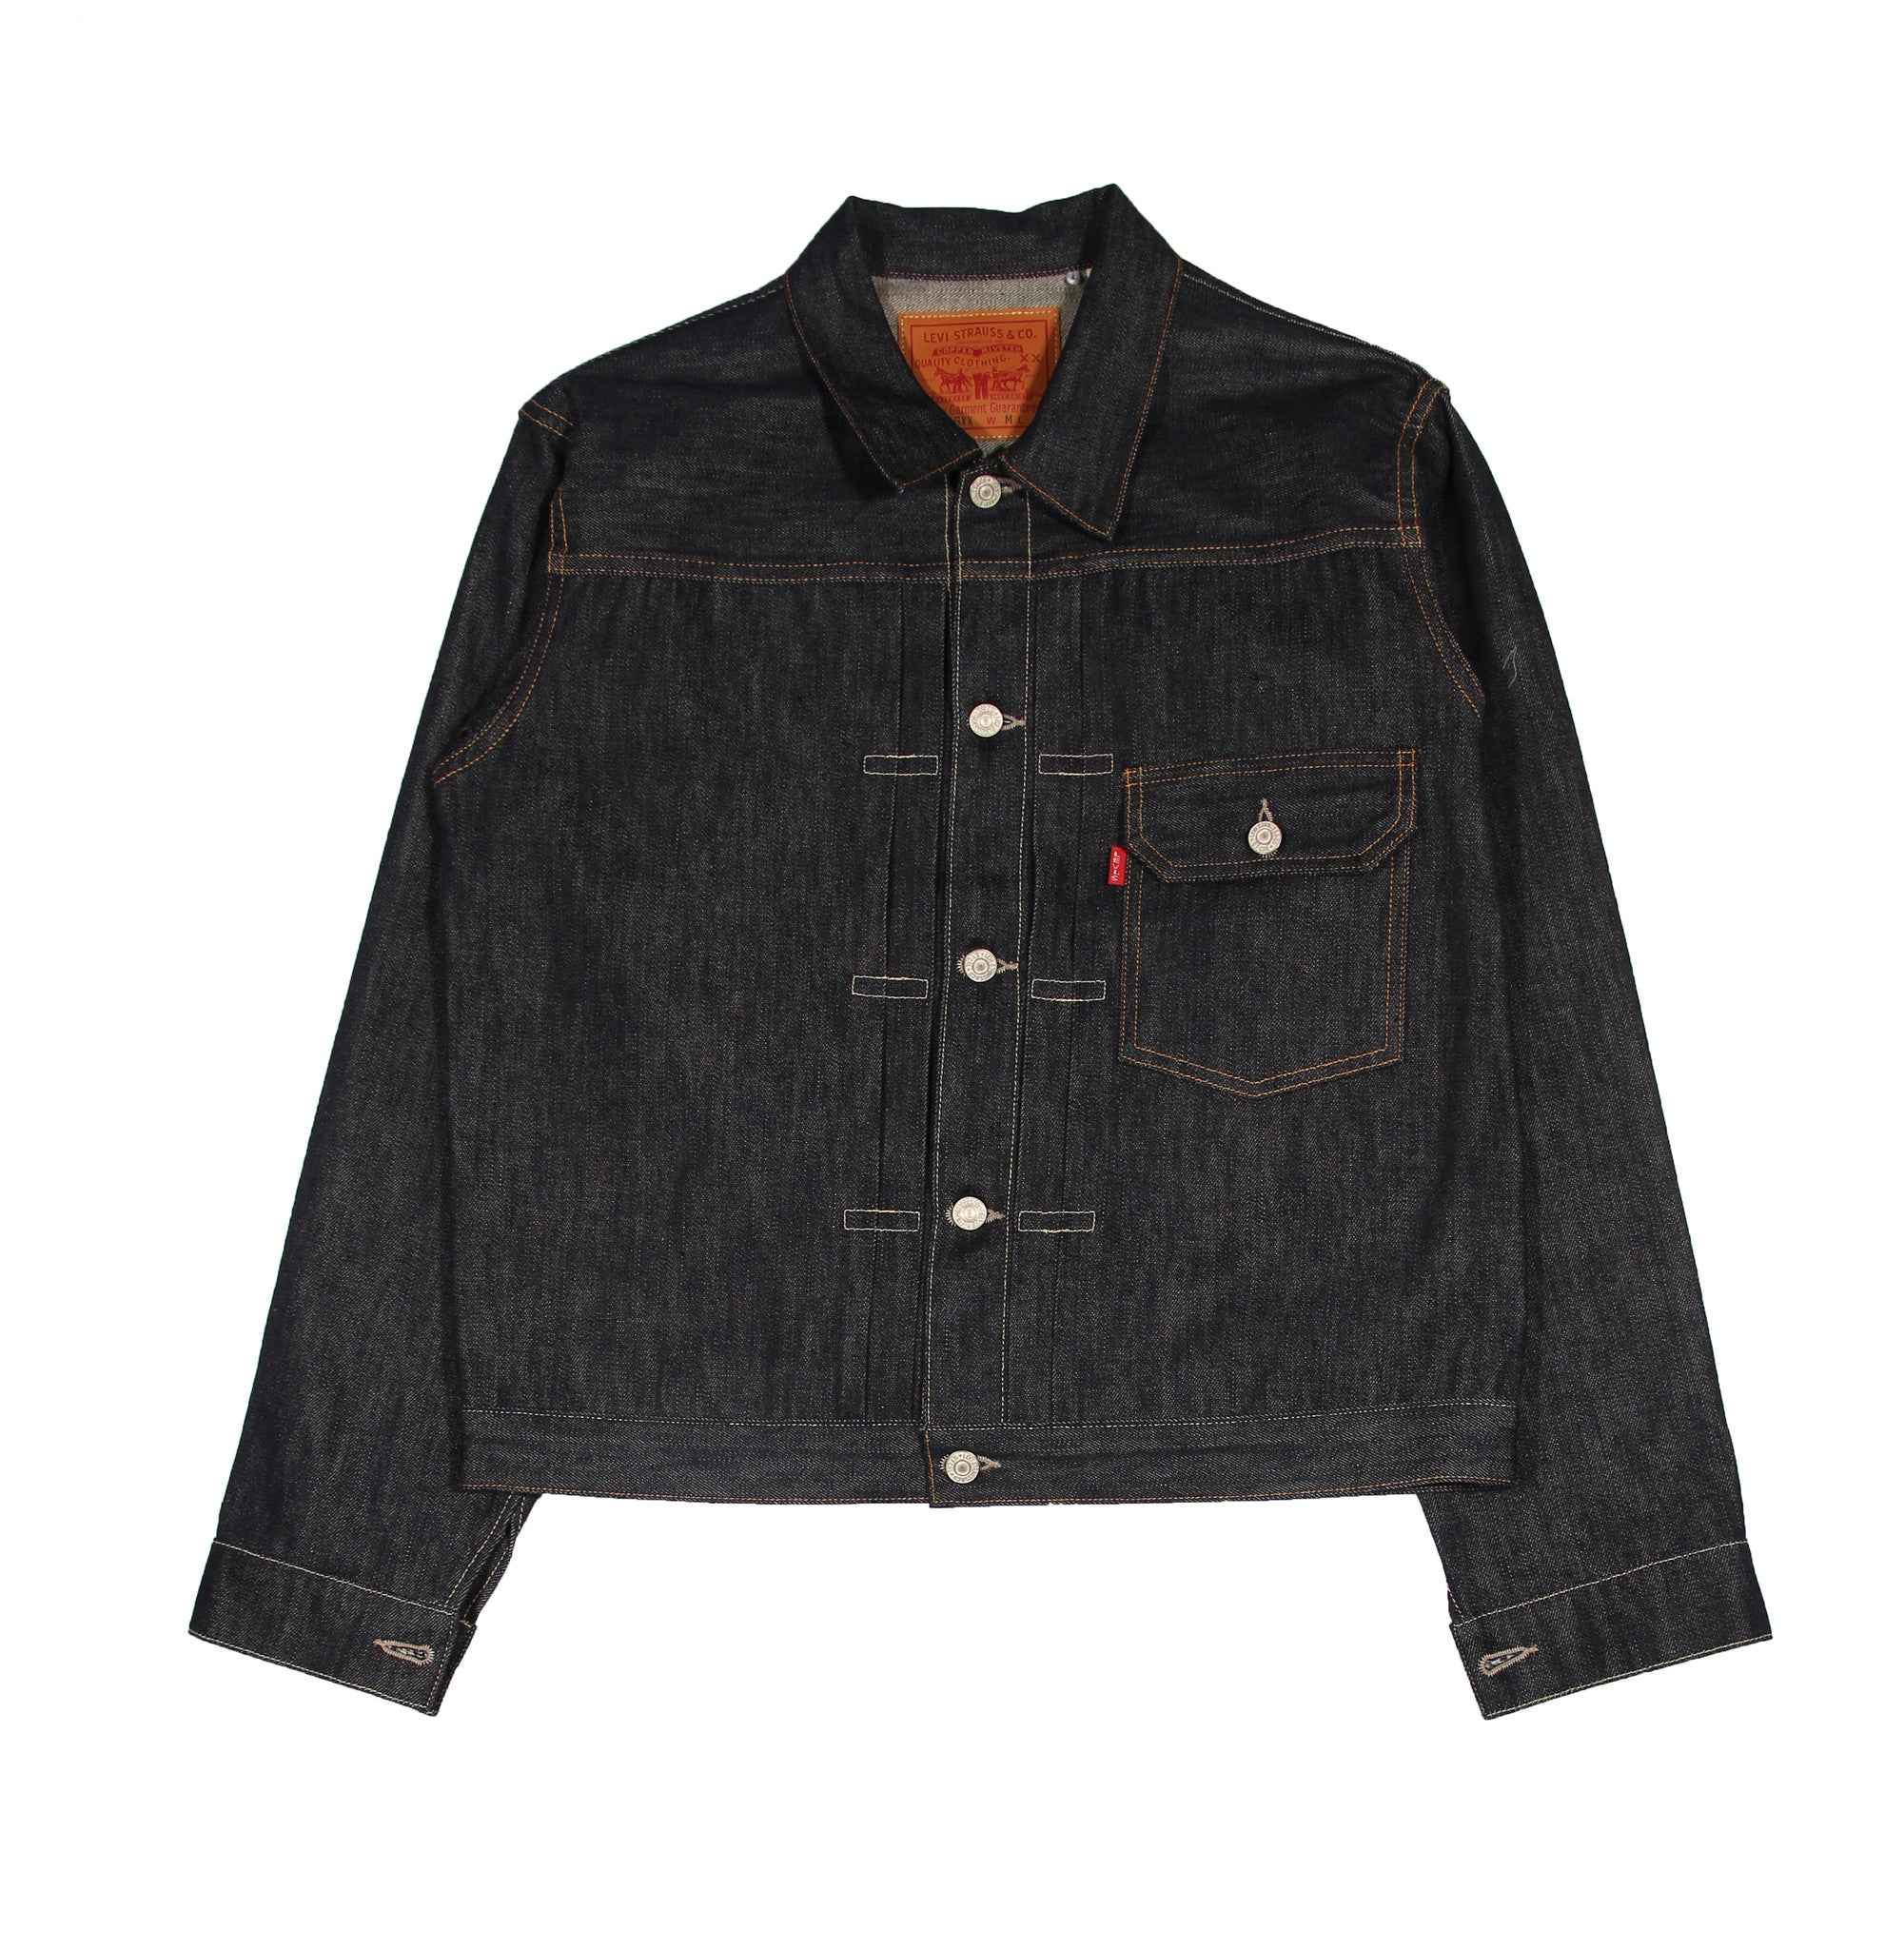 LEVI'S 1936 TYPE I JACKET IN RIGID - COSMOTOG